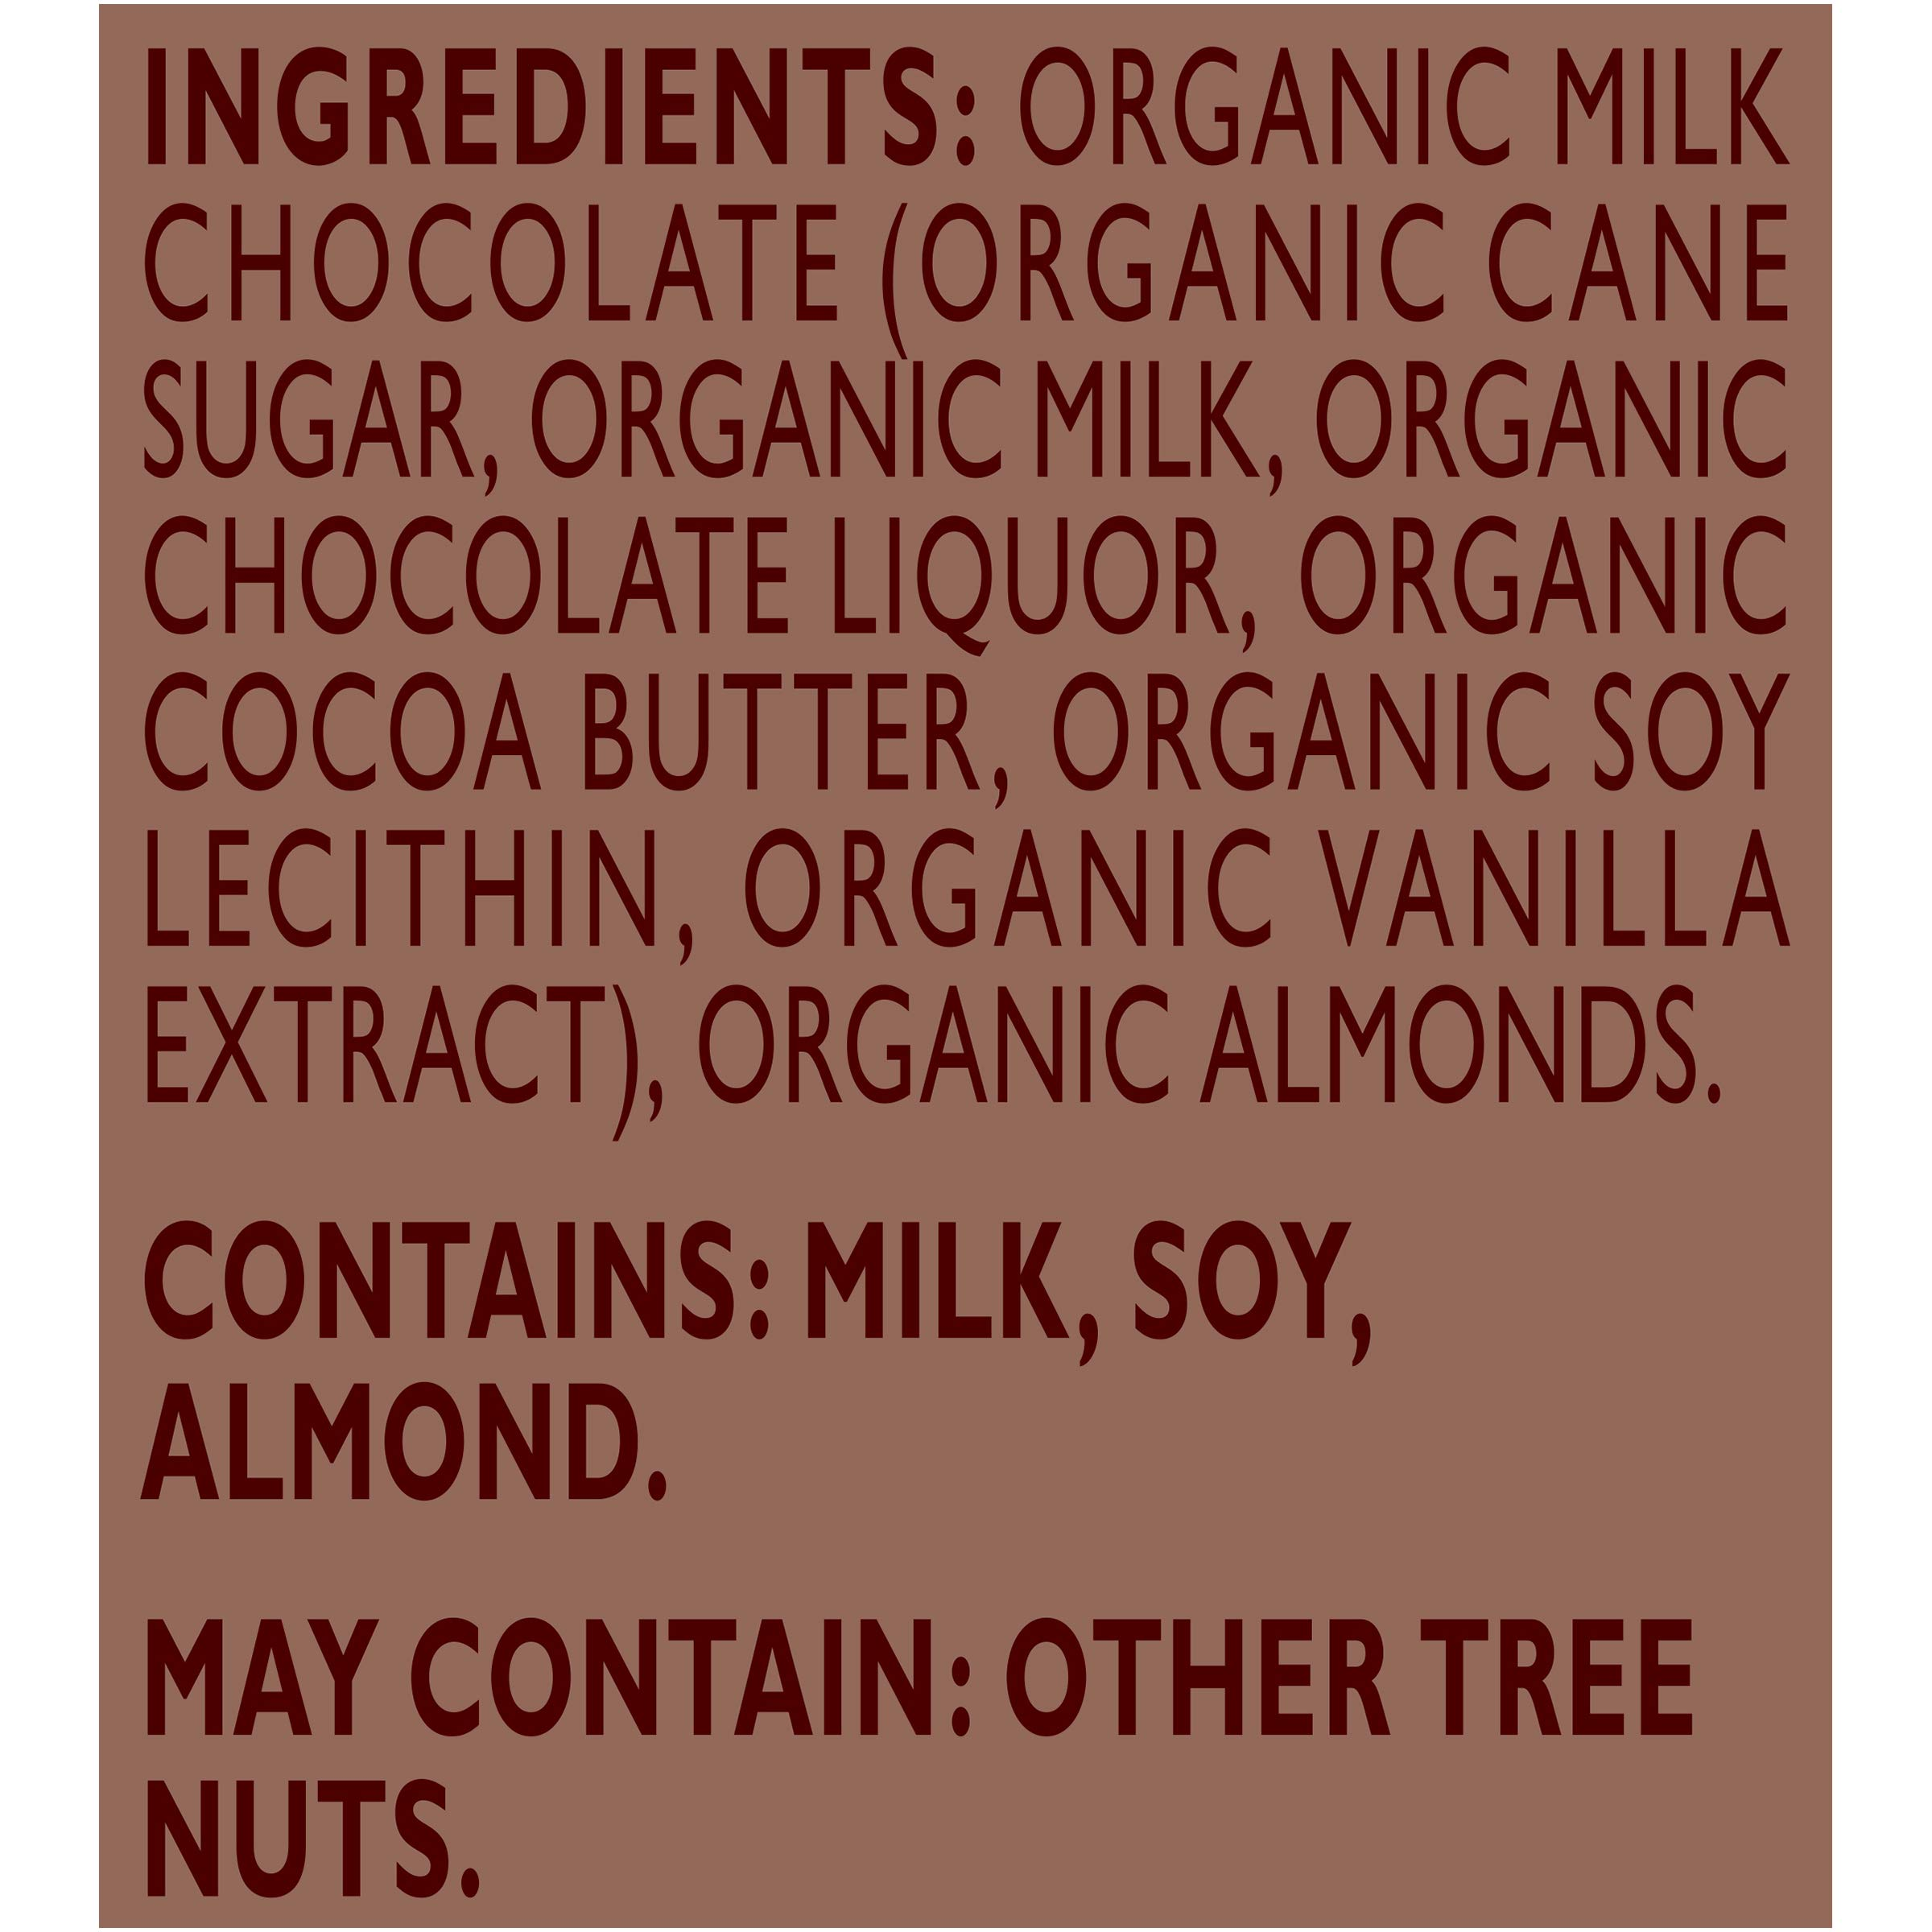 Green & Black's Organic Milk Chocolate With Almonds, 37% Cacao, 10Count by Green & Black's